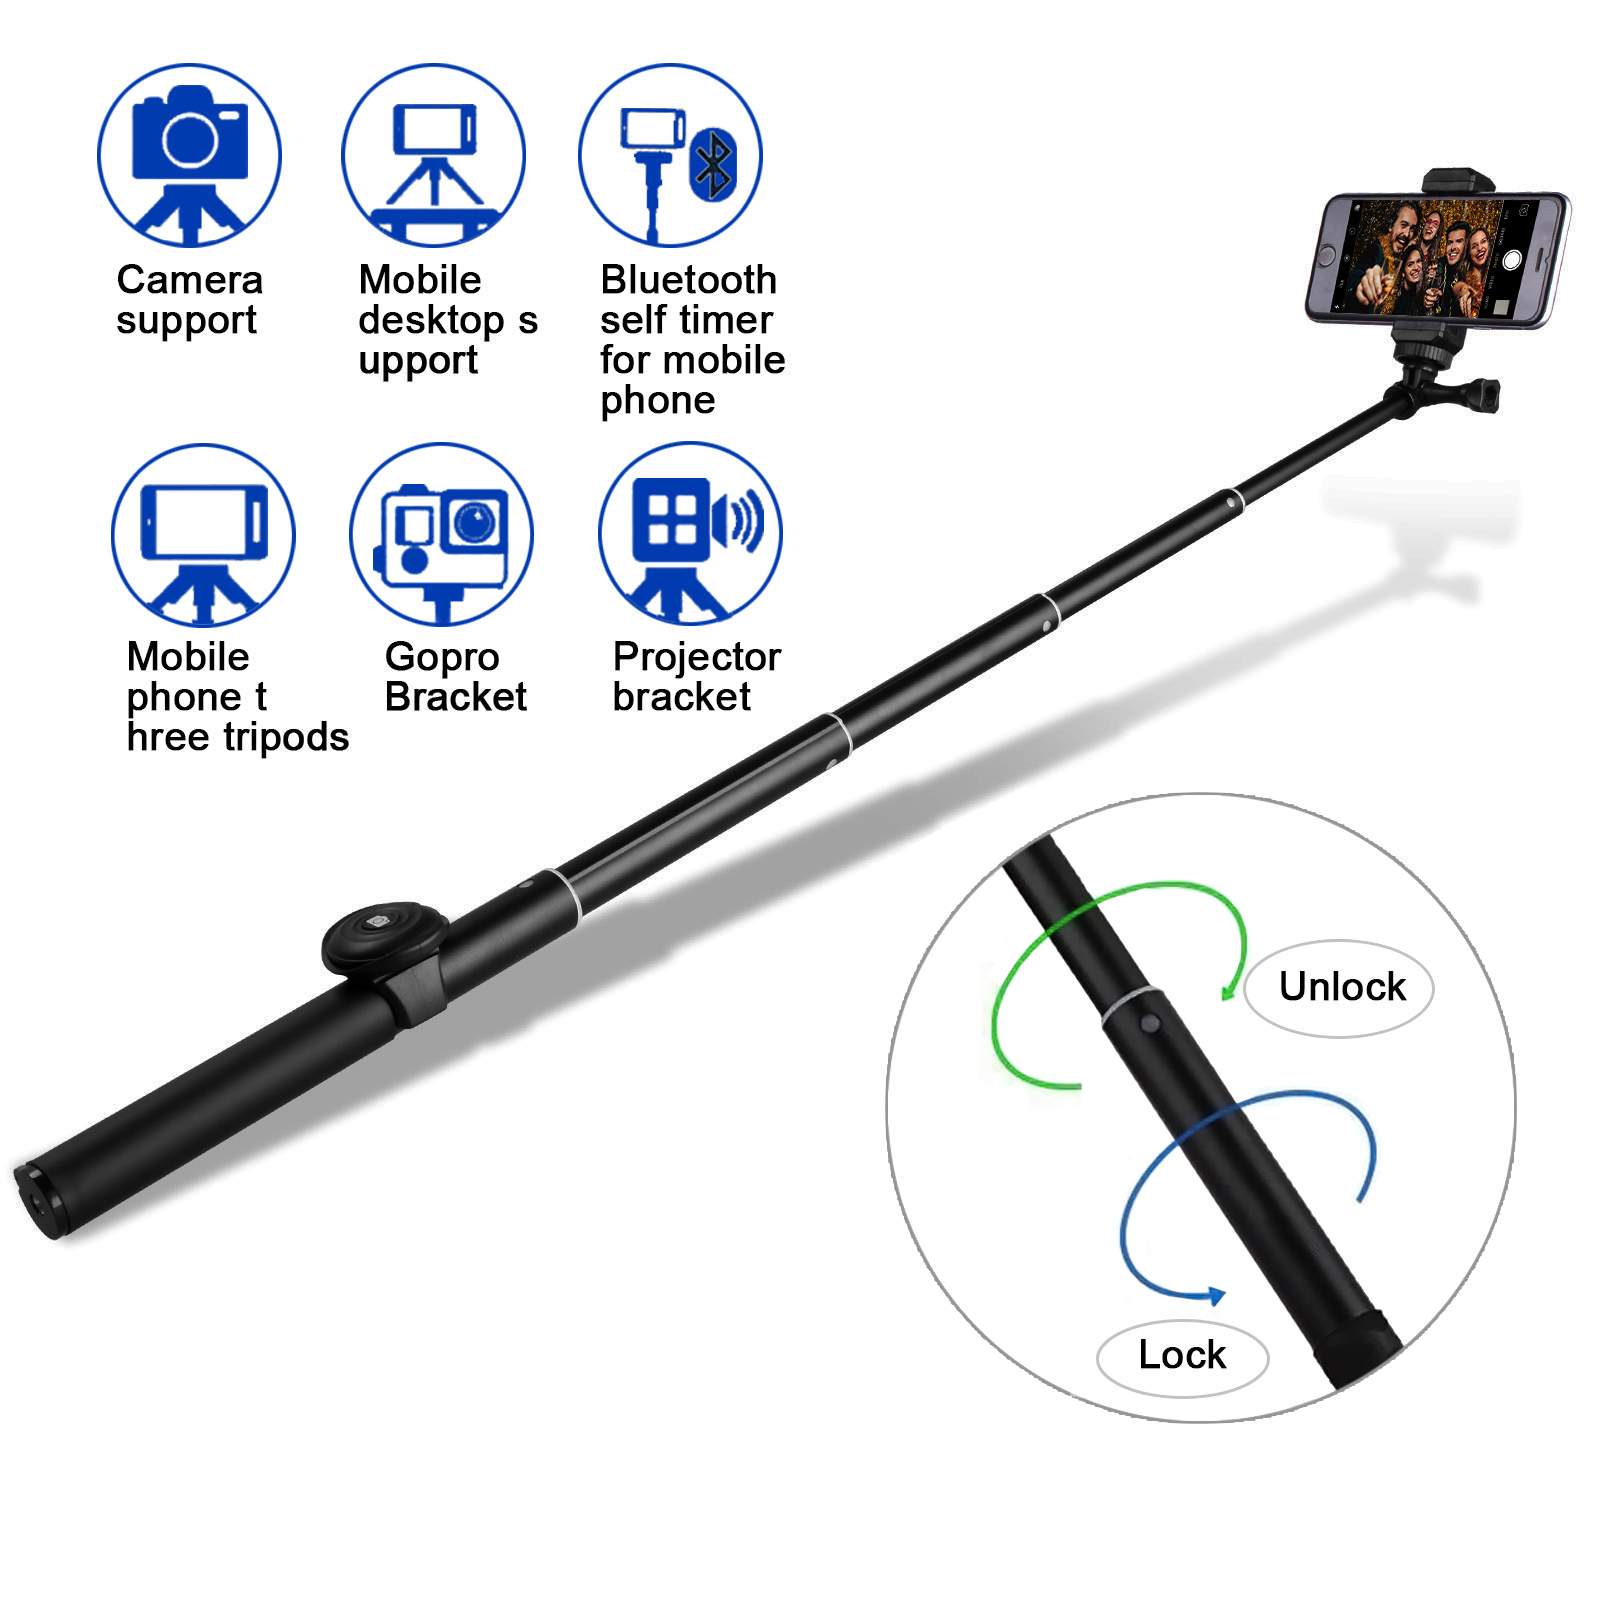 Bluetooth Selfie Stick, M.Way Extendable Selfie Stick 360 ° Rotation Monopod with Detachable Remote Control and Phone Camera Tripod for Cameras and More Smartphones